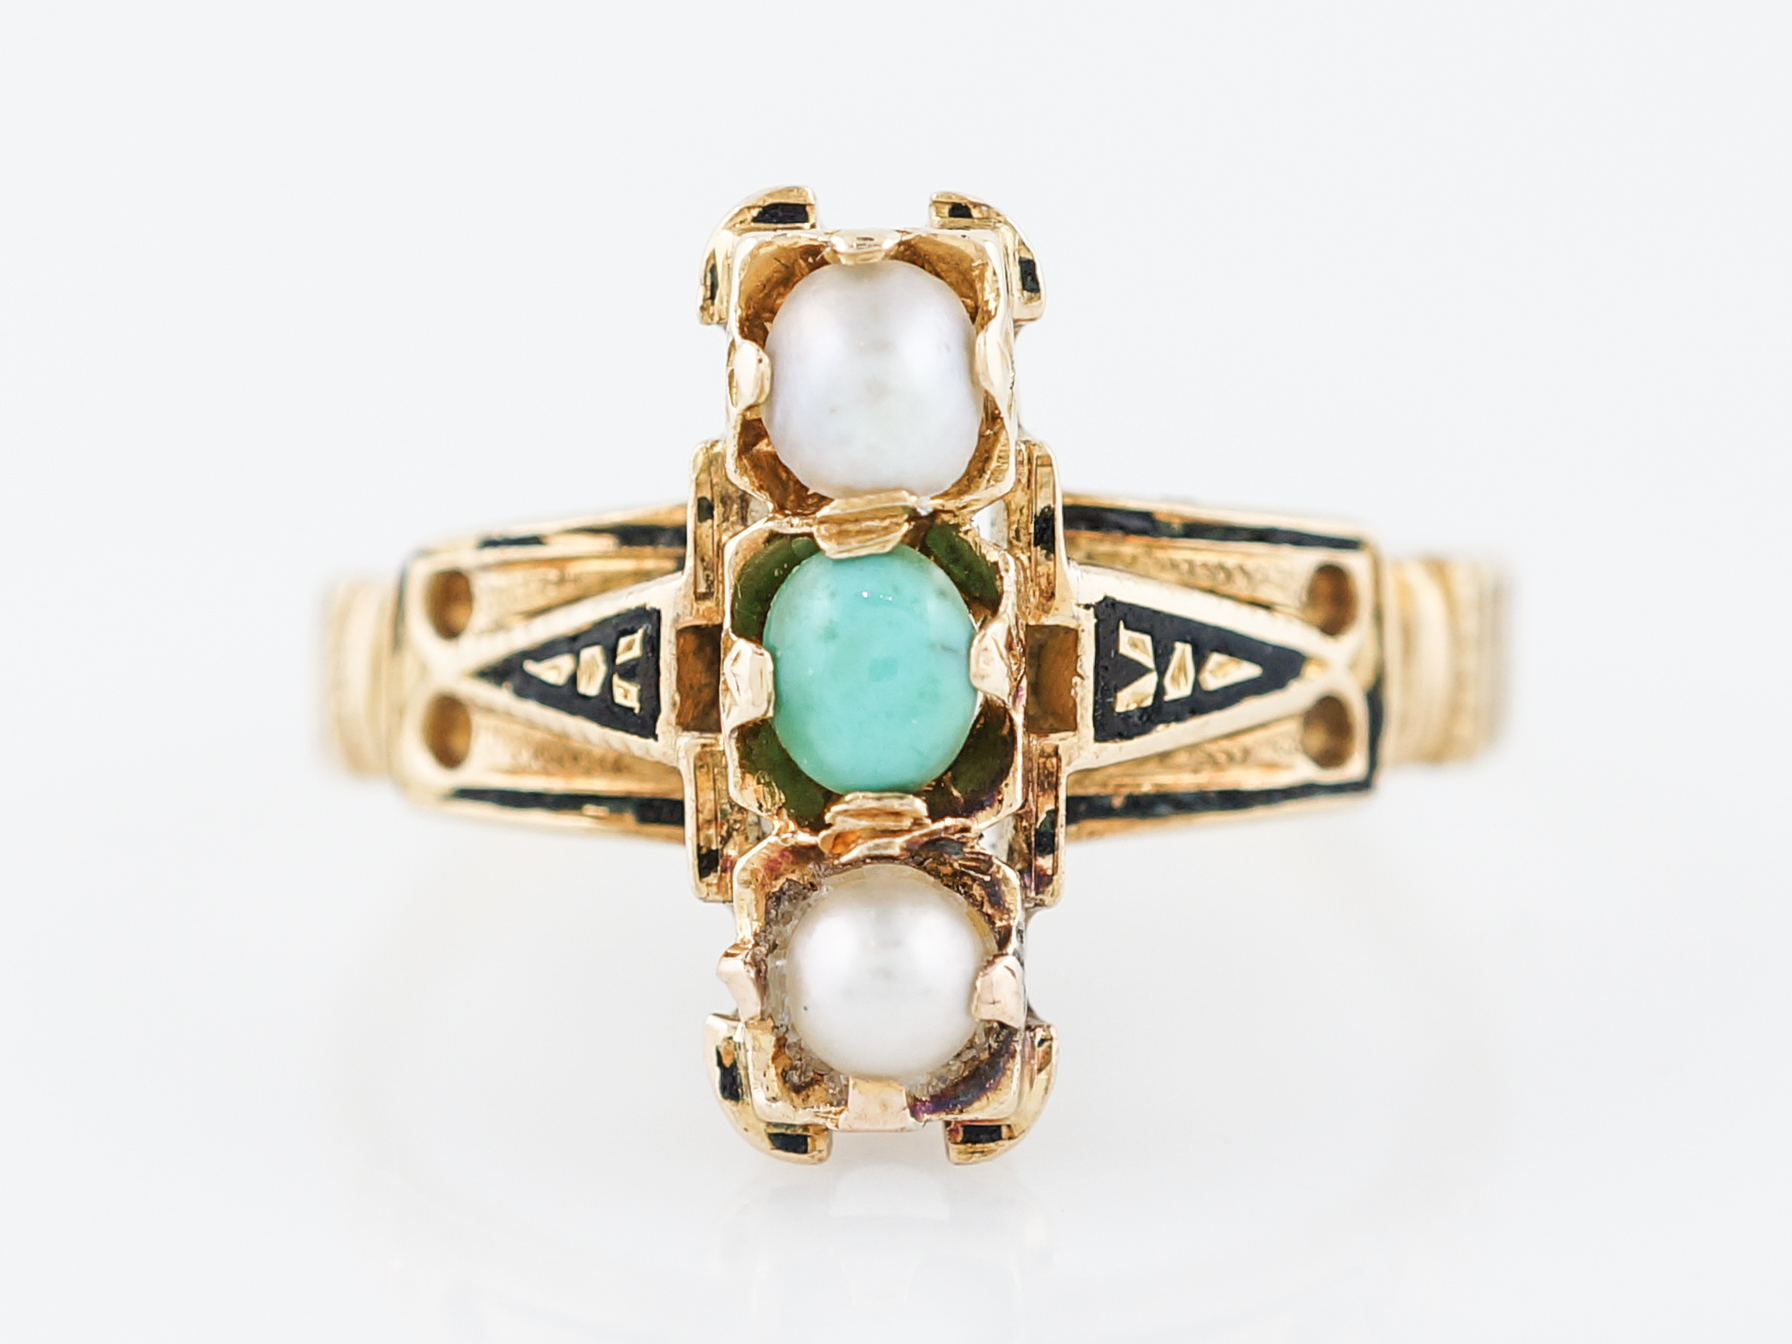 Antique Right Hand Ring Victorian Turquoise & Seed Pearls in 18k Yellow Gold-48